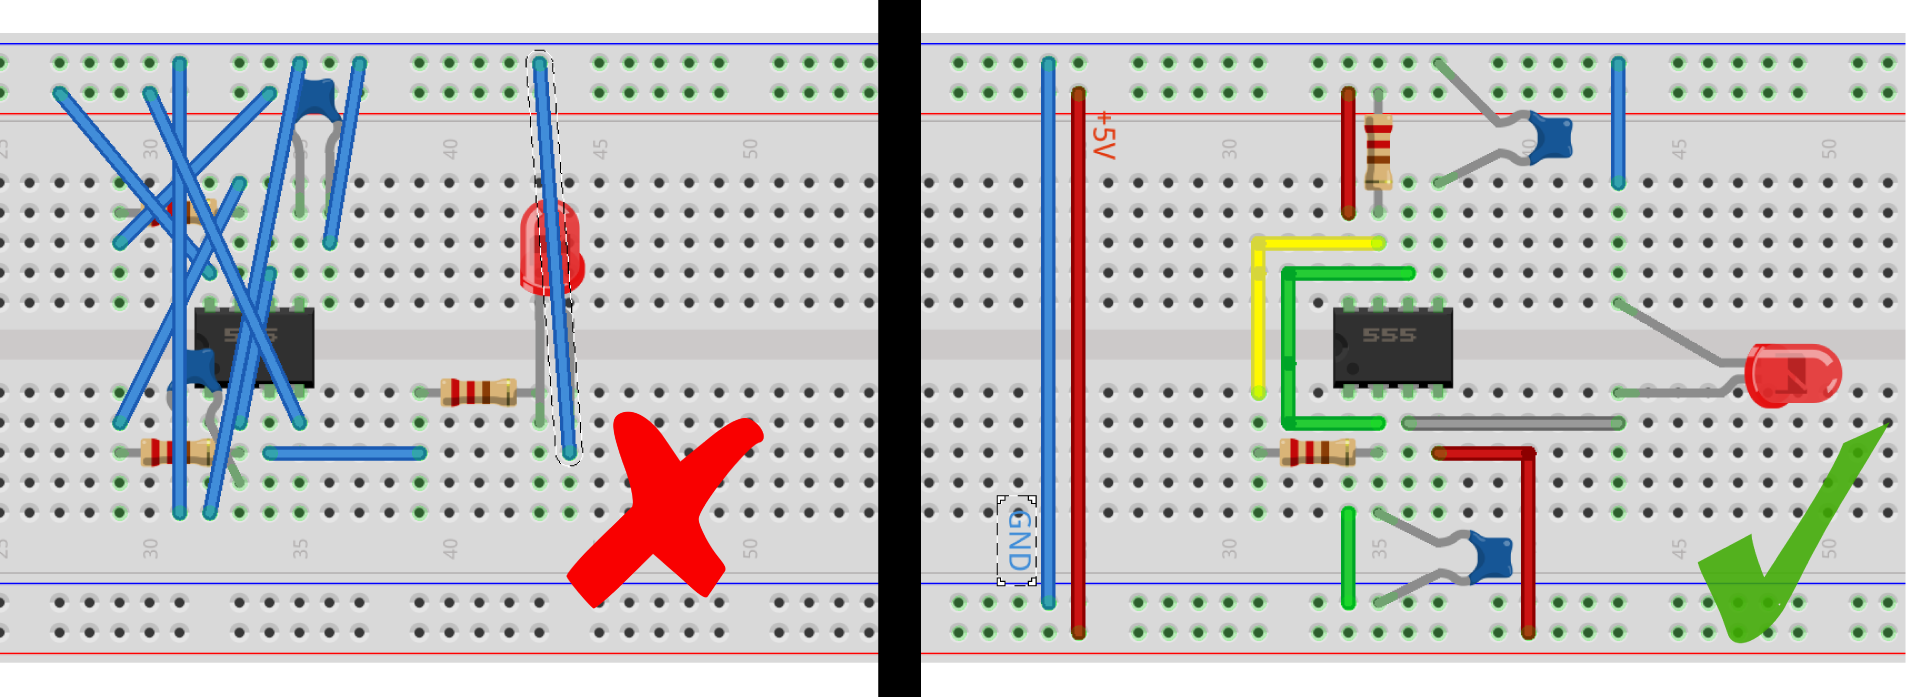 Circuit Diagram Using Breadboard Wiring Library Led Clock Design On Fritzing Barkeng Mad Messy Diagrams